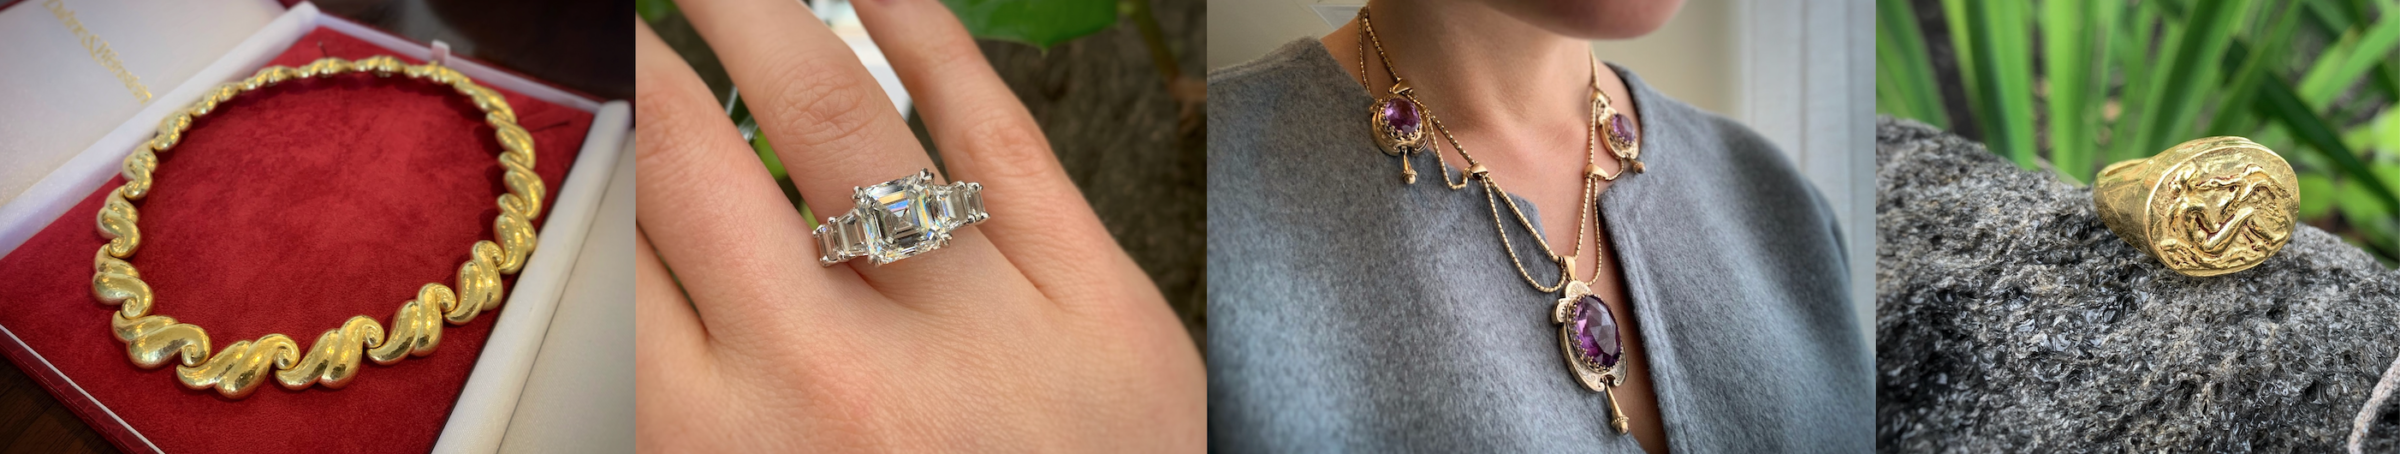 October Jewelry History Highlights